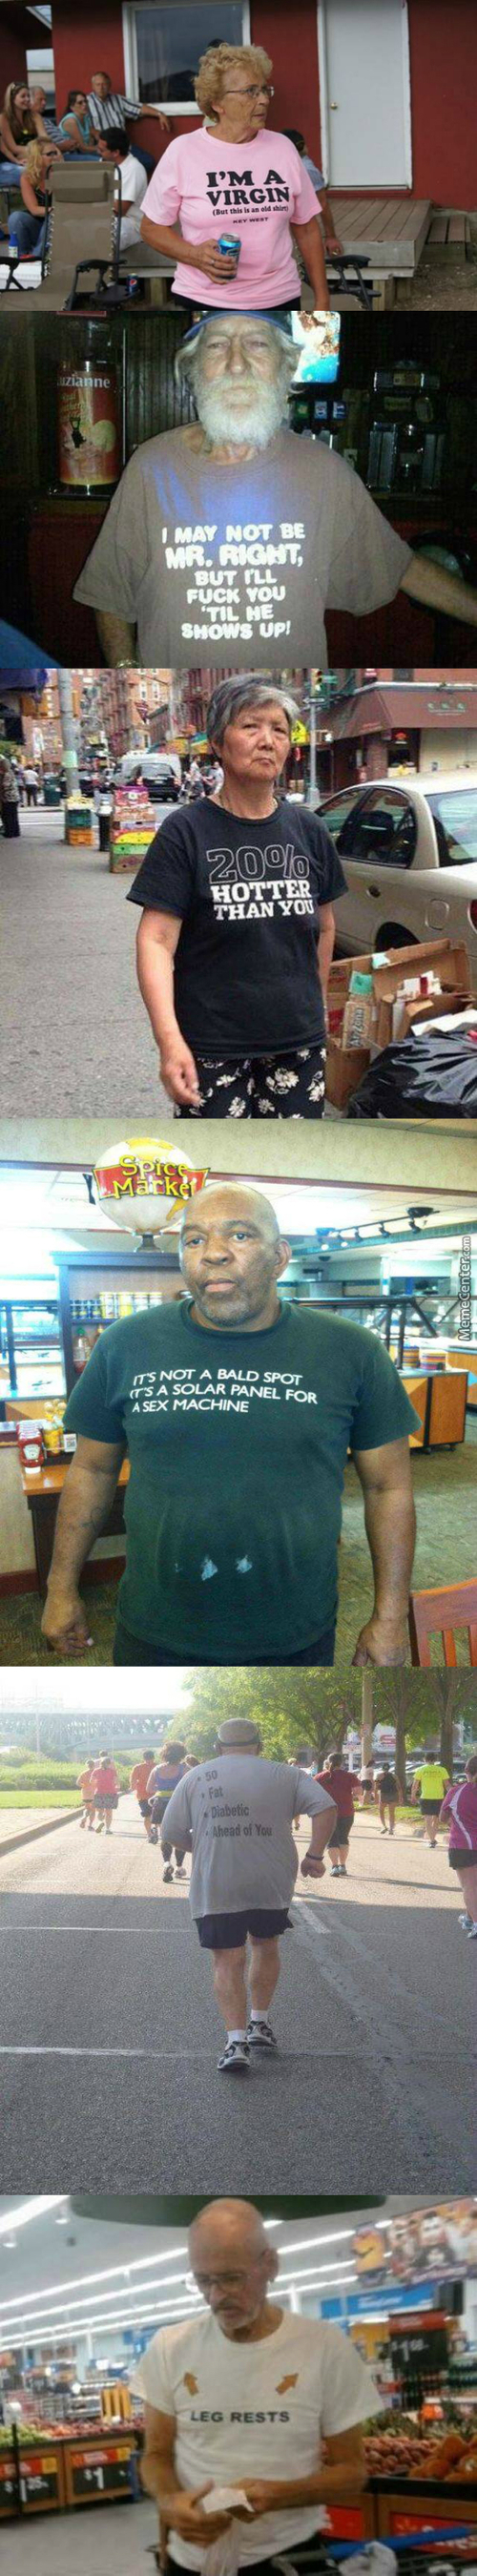 A Compilation Of Old People Wearing Funny Shirts Number 2! (Sorry For Long Post)